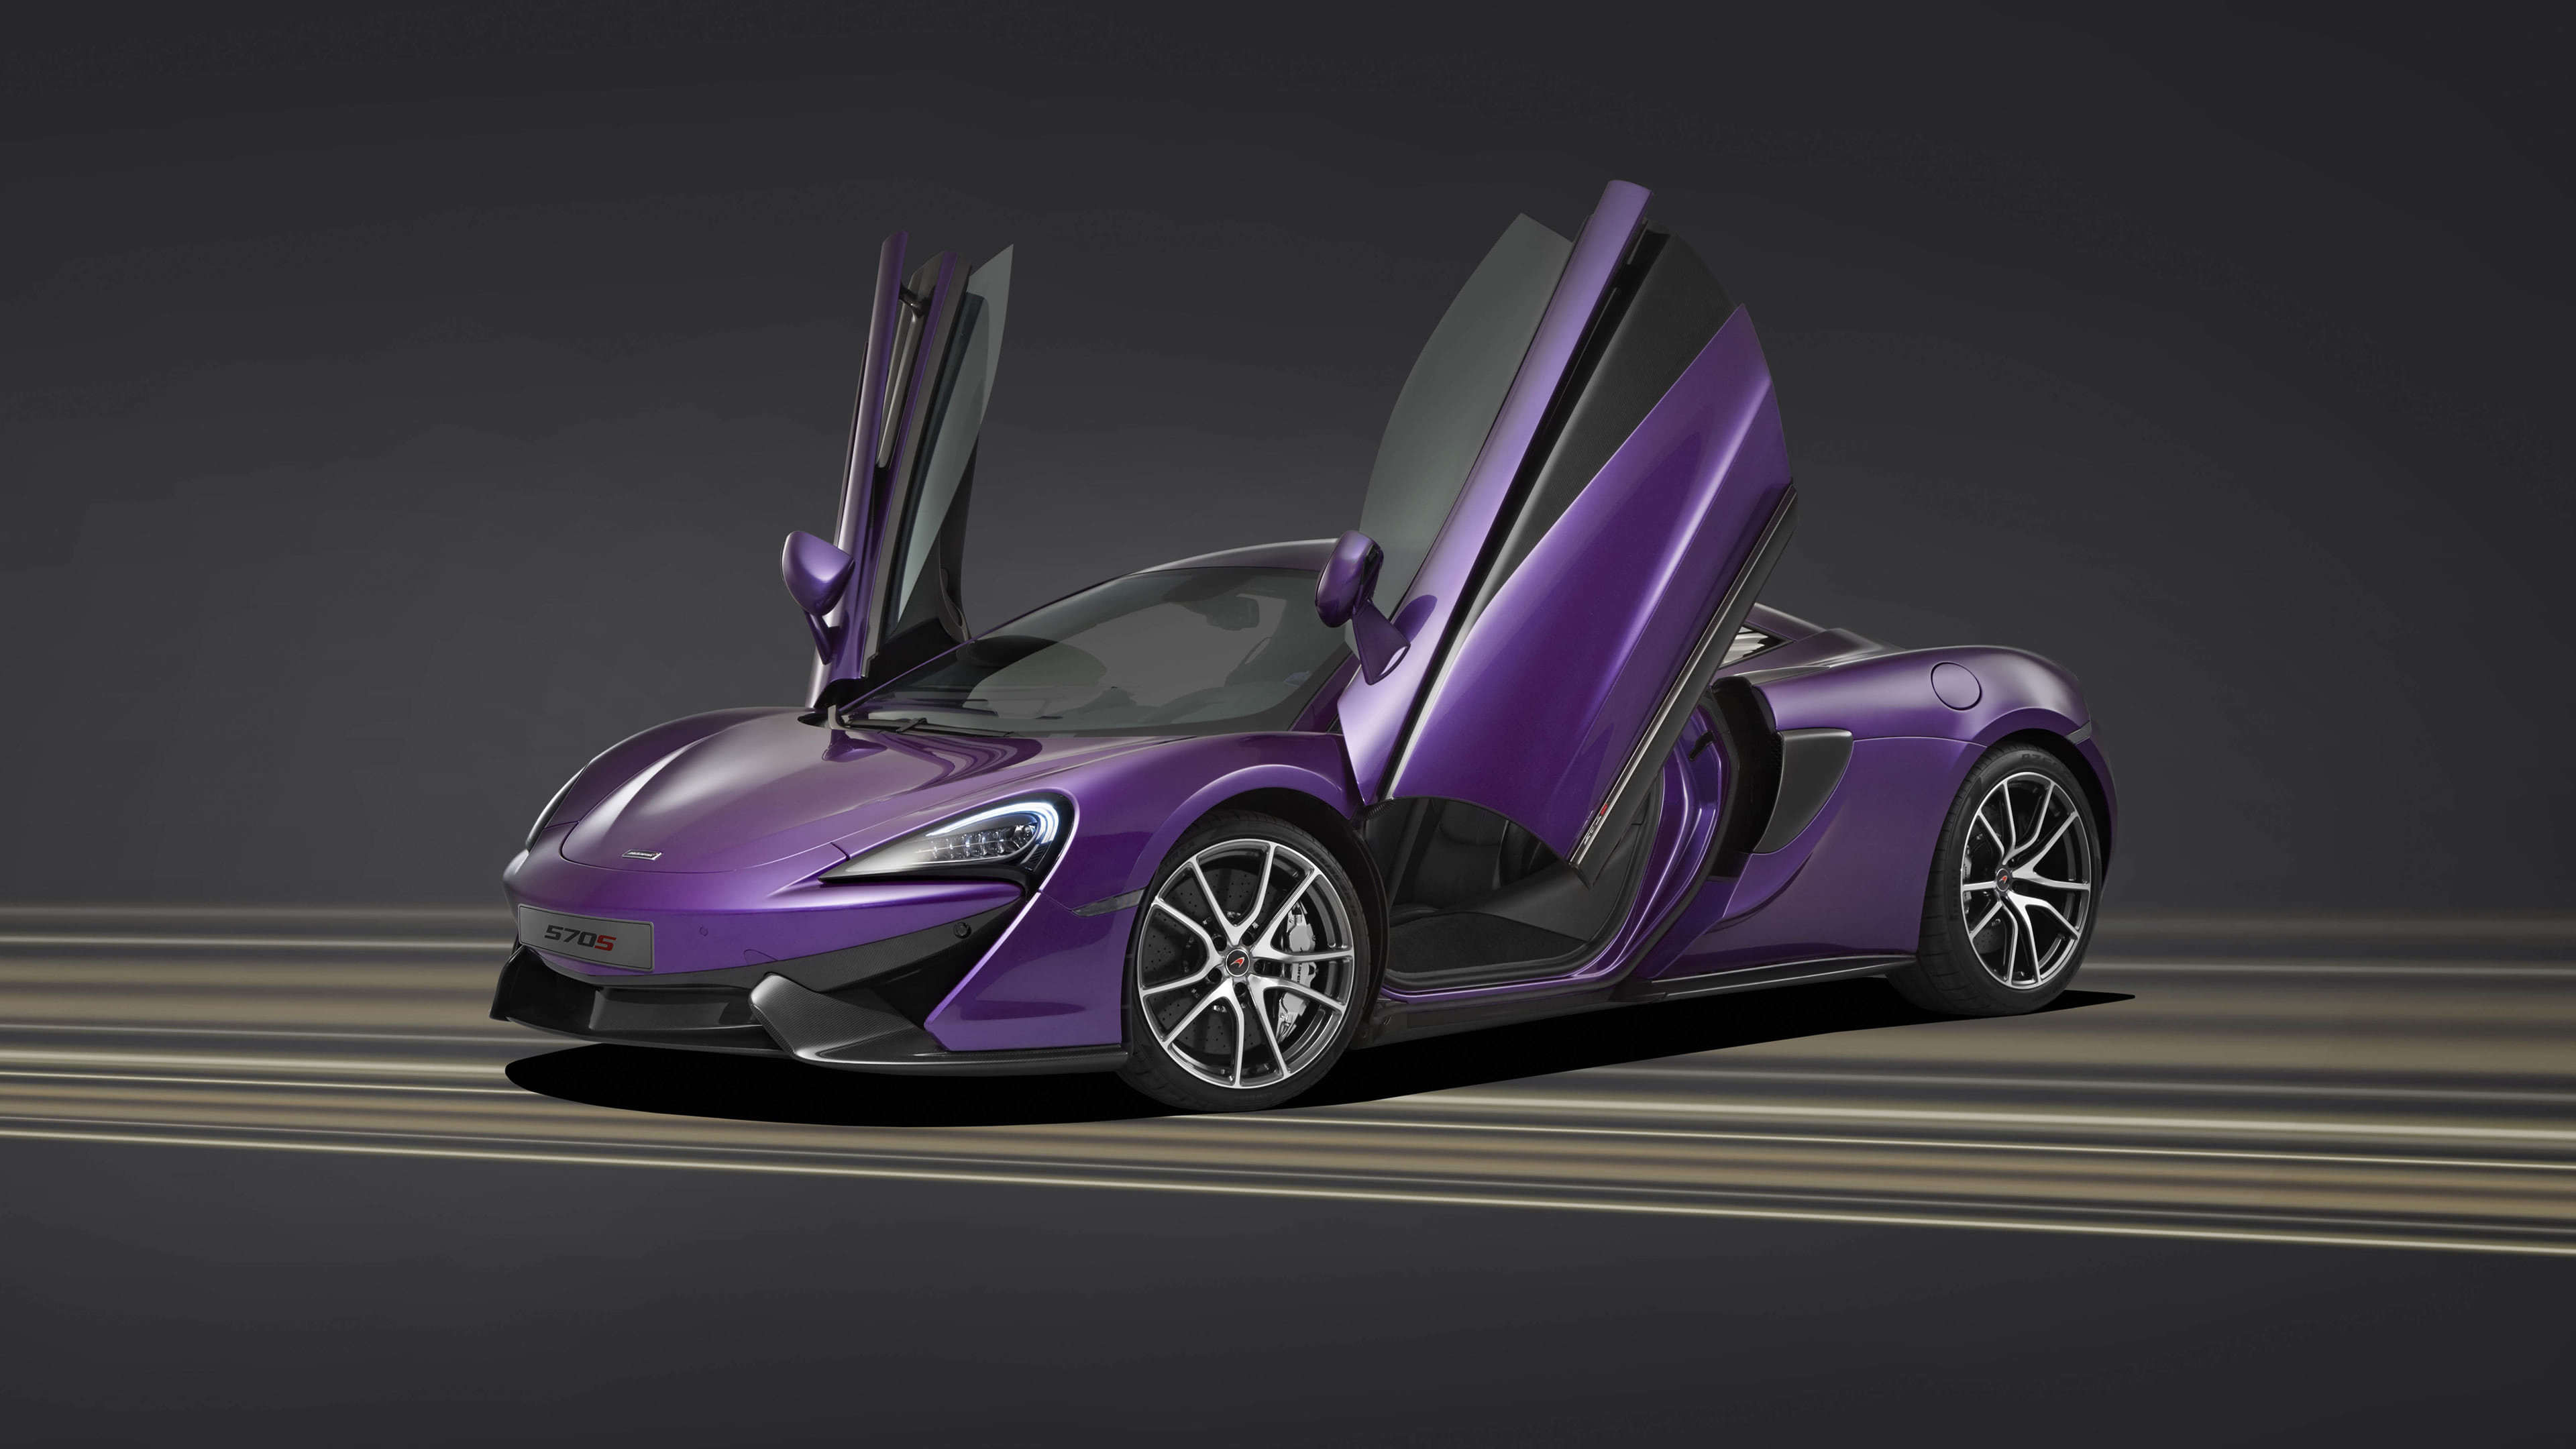 mclaren 570s mso metallic purple uhd 4k wallpaper